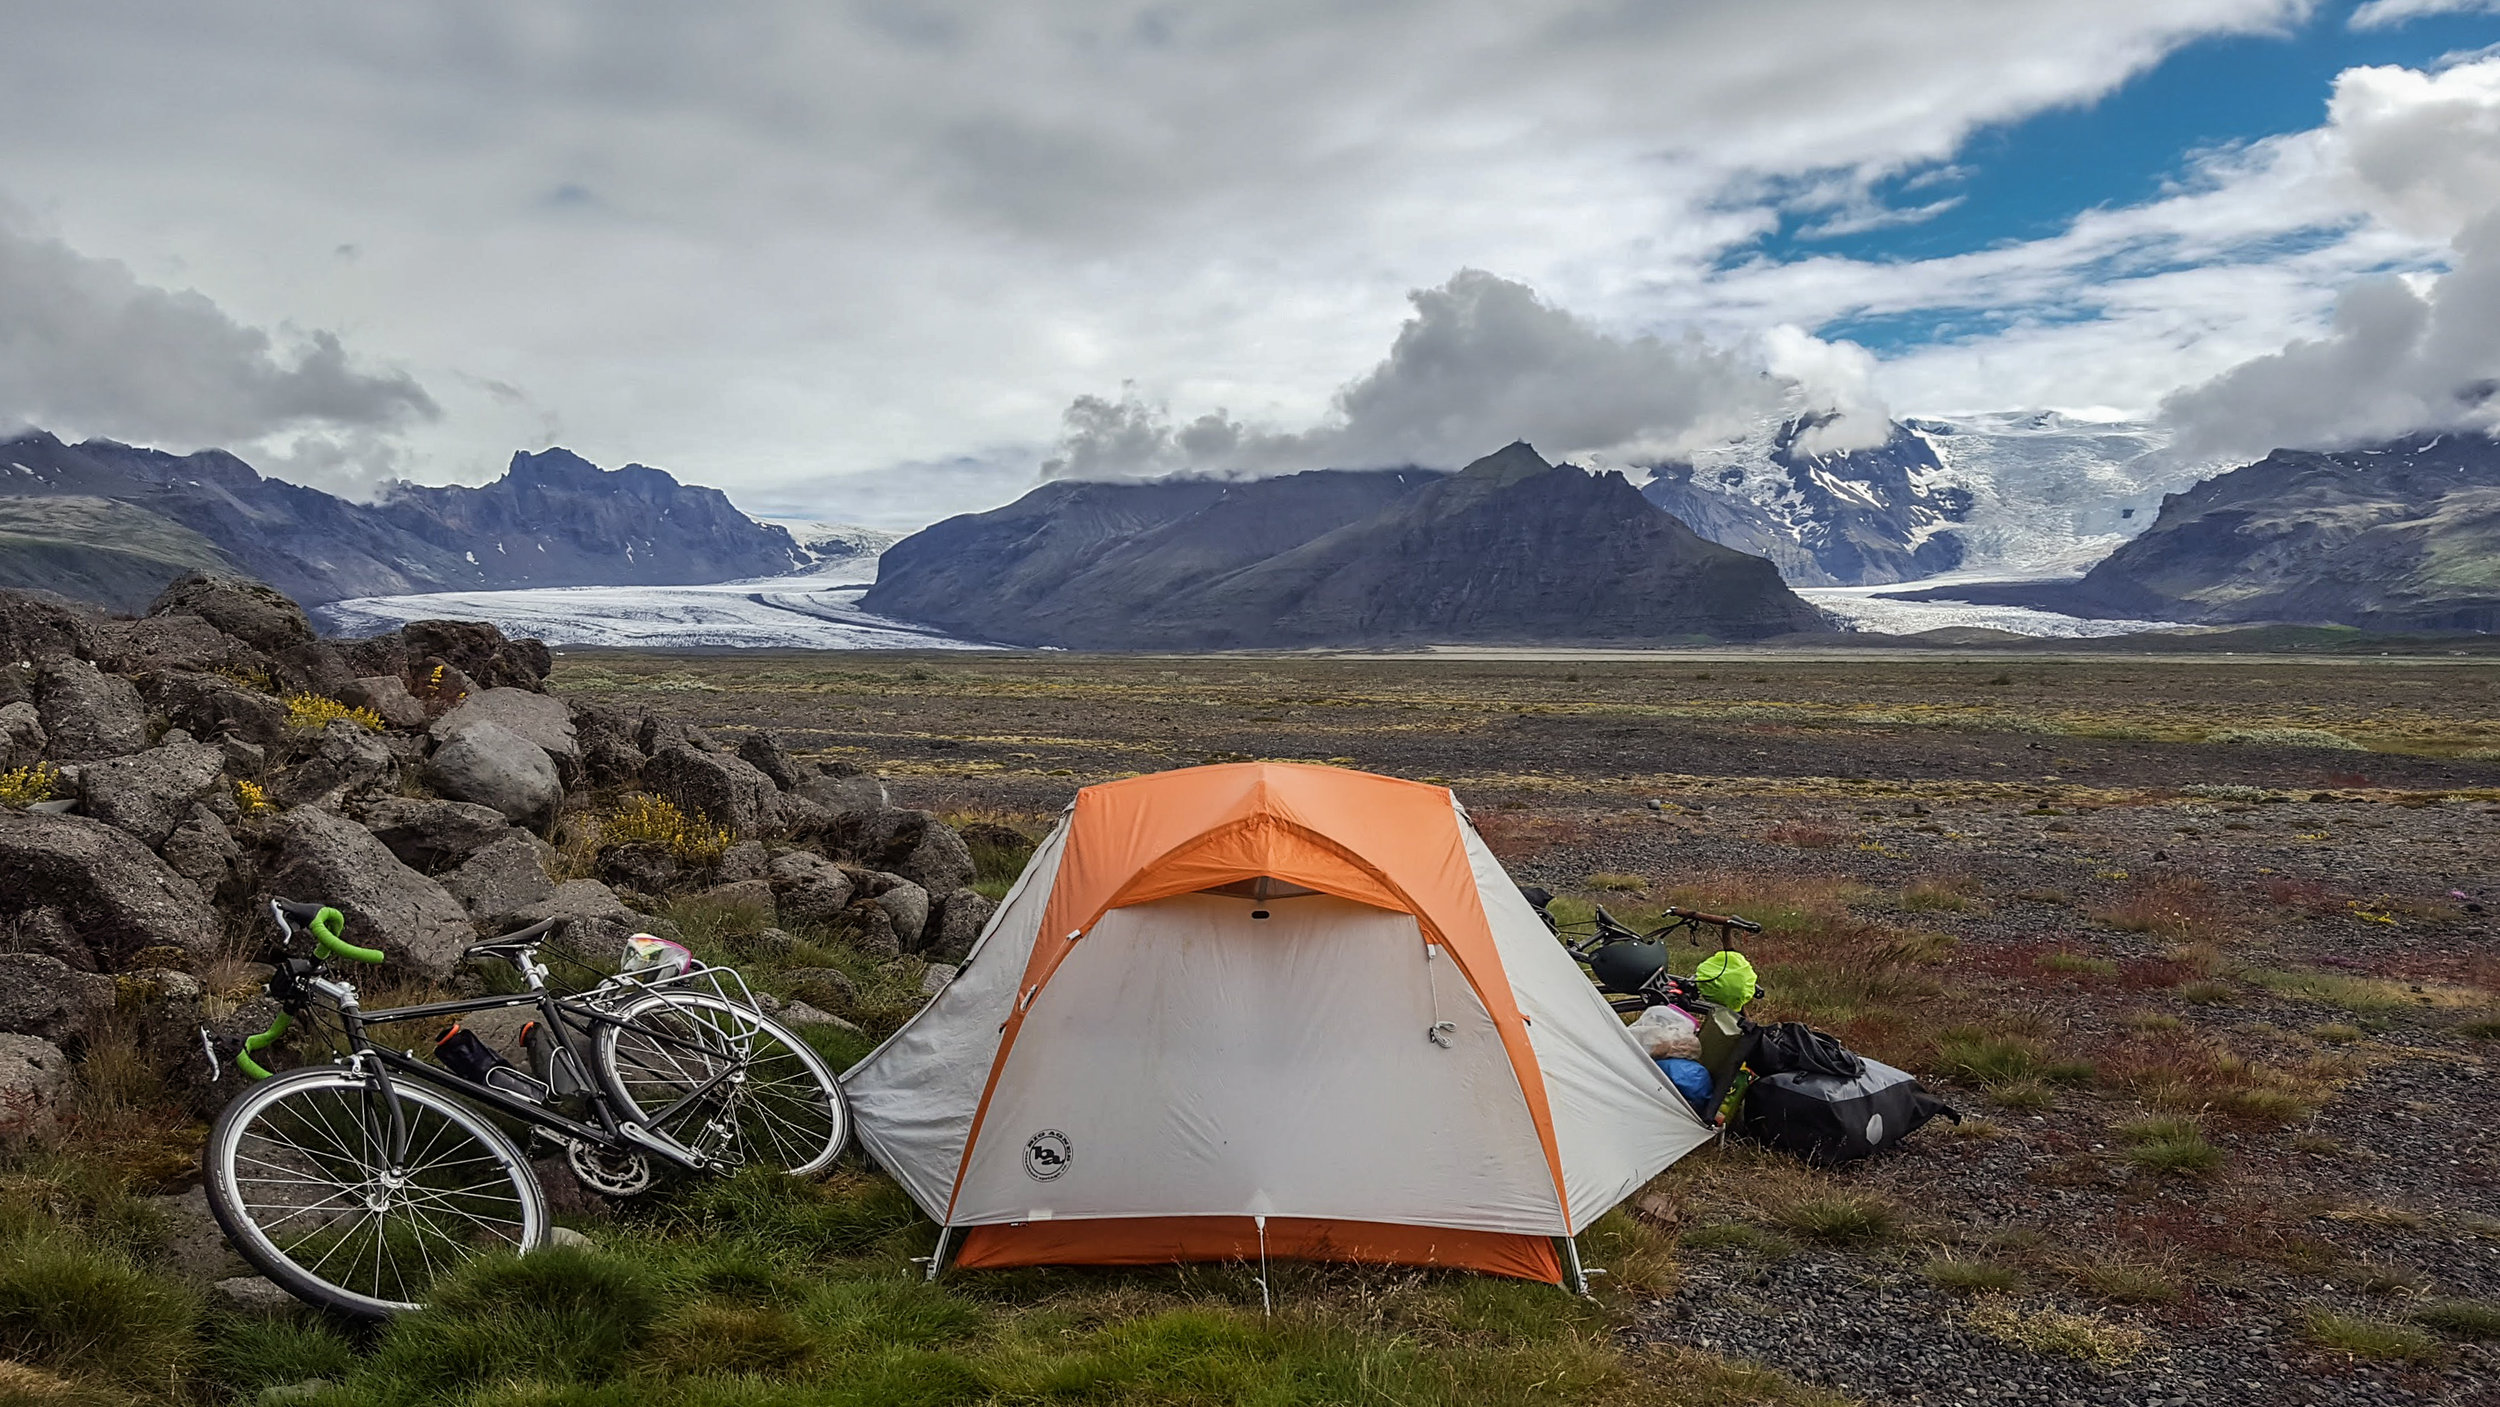 Wild camping outside of Skaftafell National Park in southern Iceland.